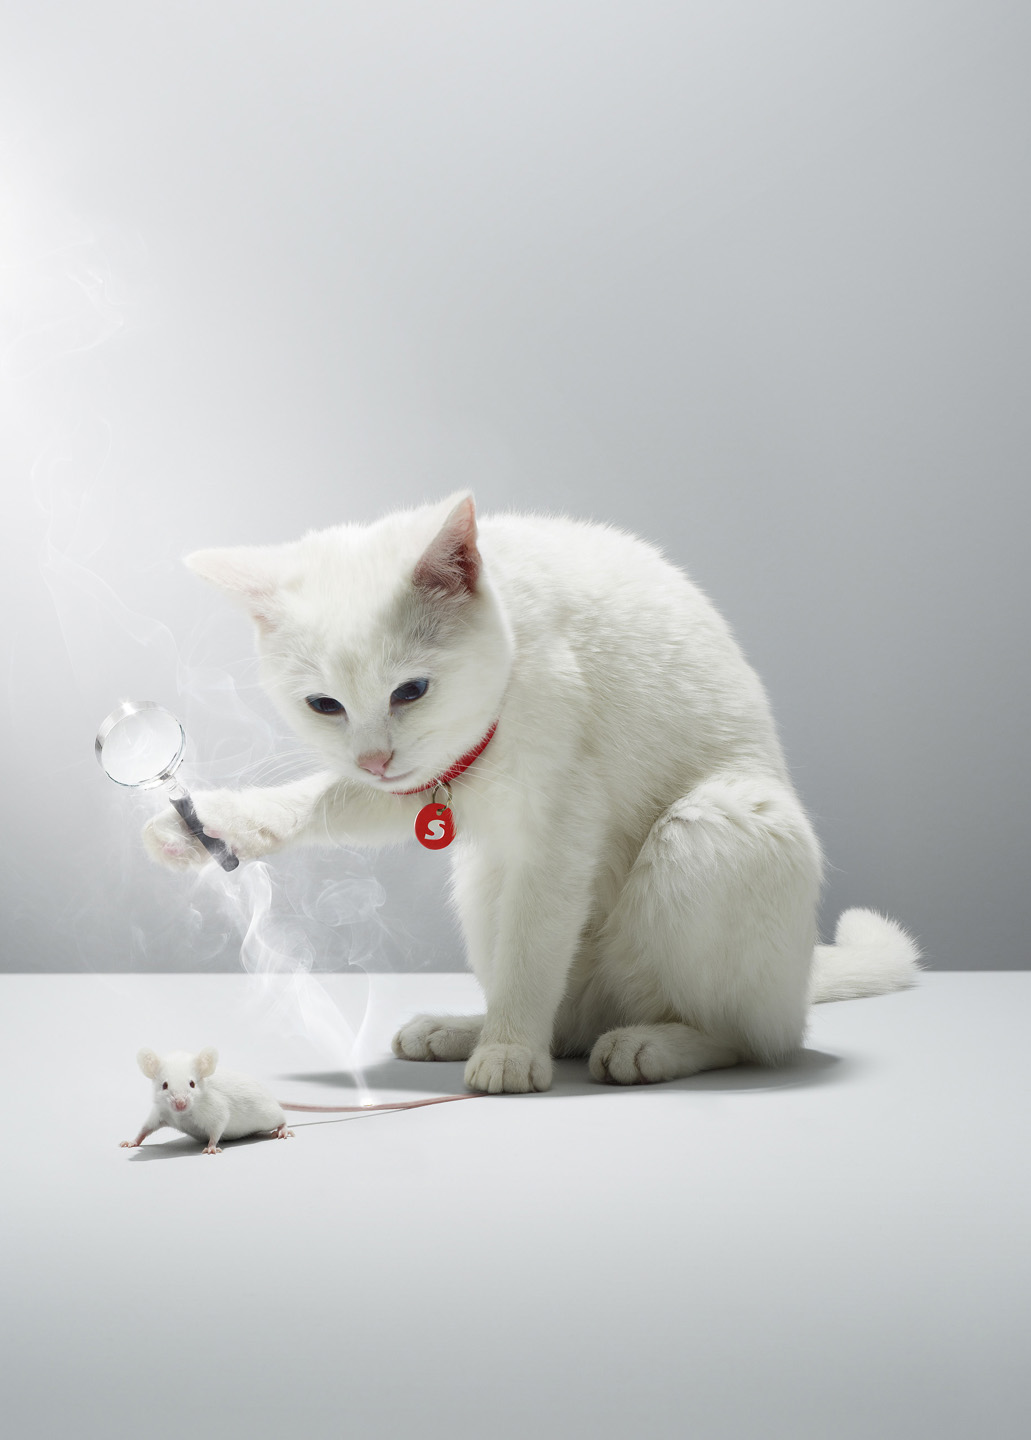 Alex Howe animal white cat focus torturing mouse trap tail game retouch